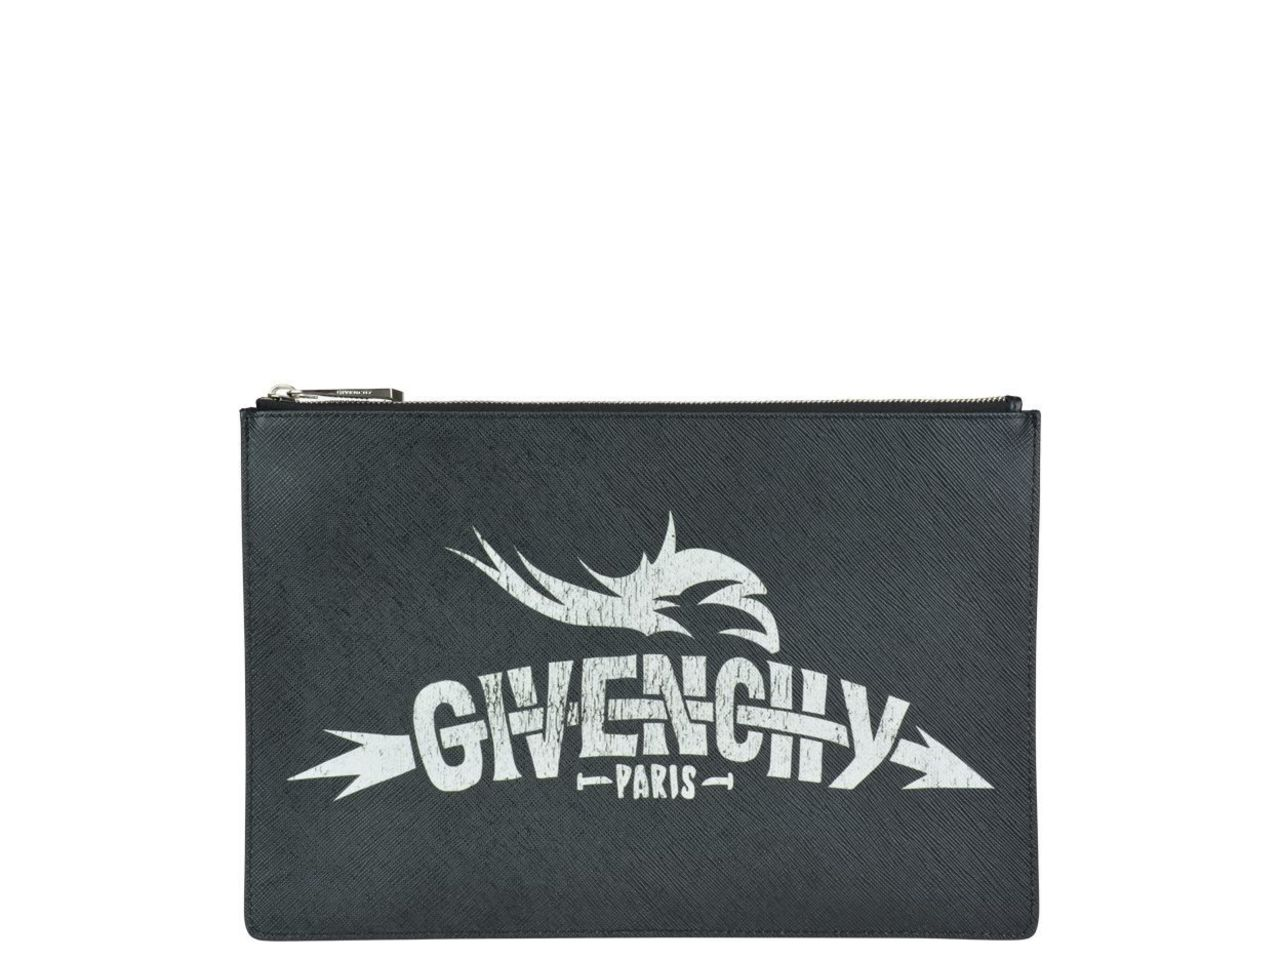 Givenchy Iconic Print Pouch